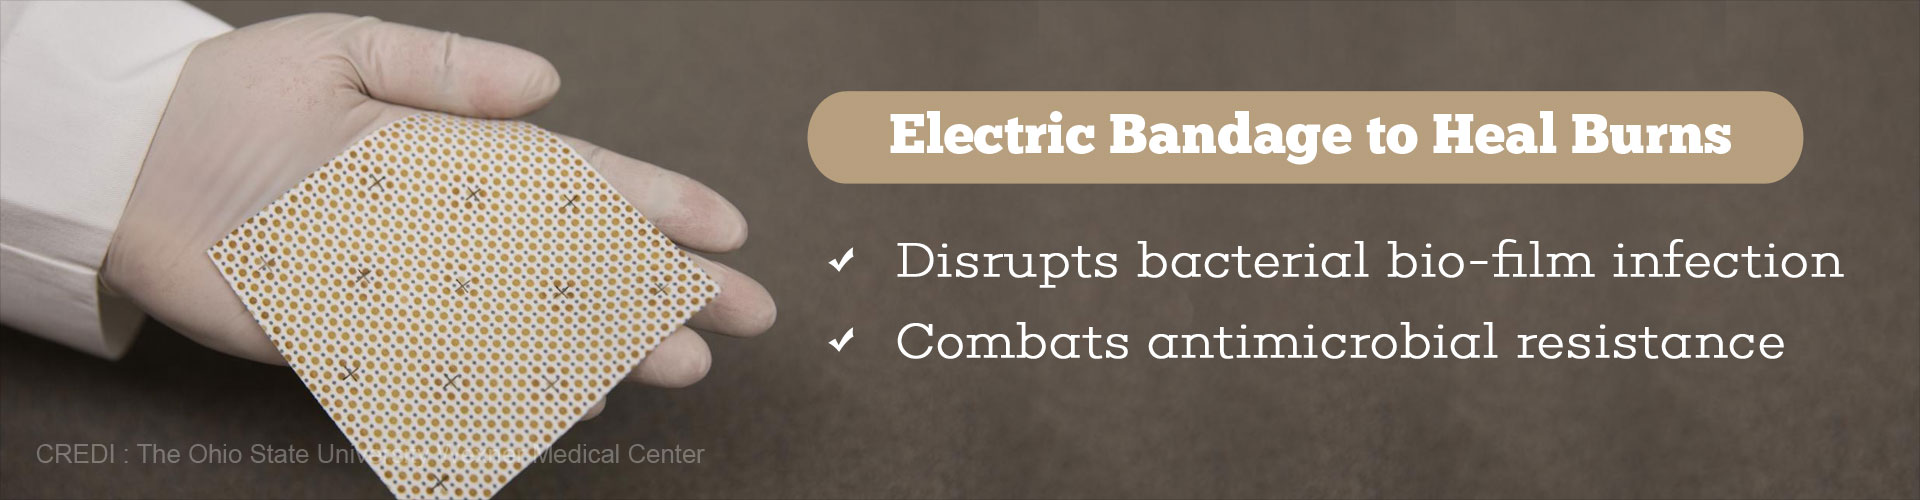 electric bandage to heal burns - disrupts bacterial bio-film infection - combats anti-microbial resistance